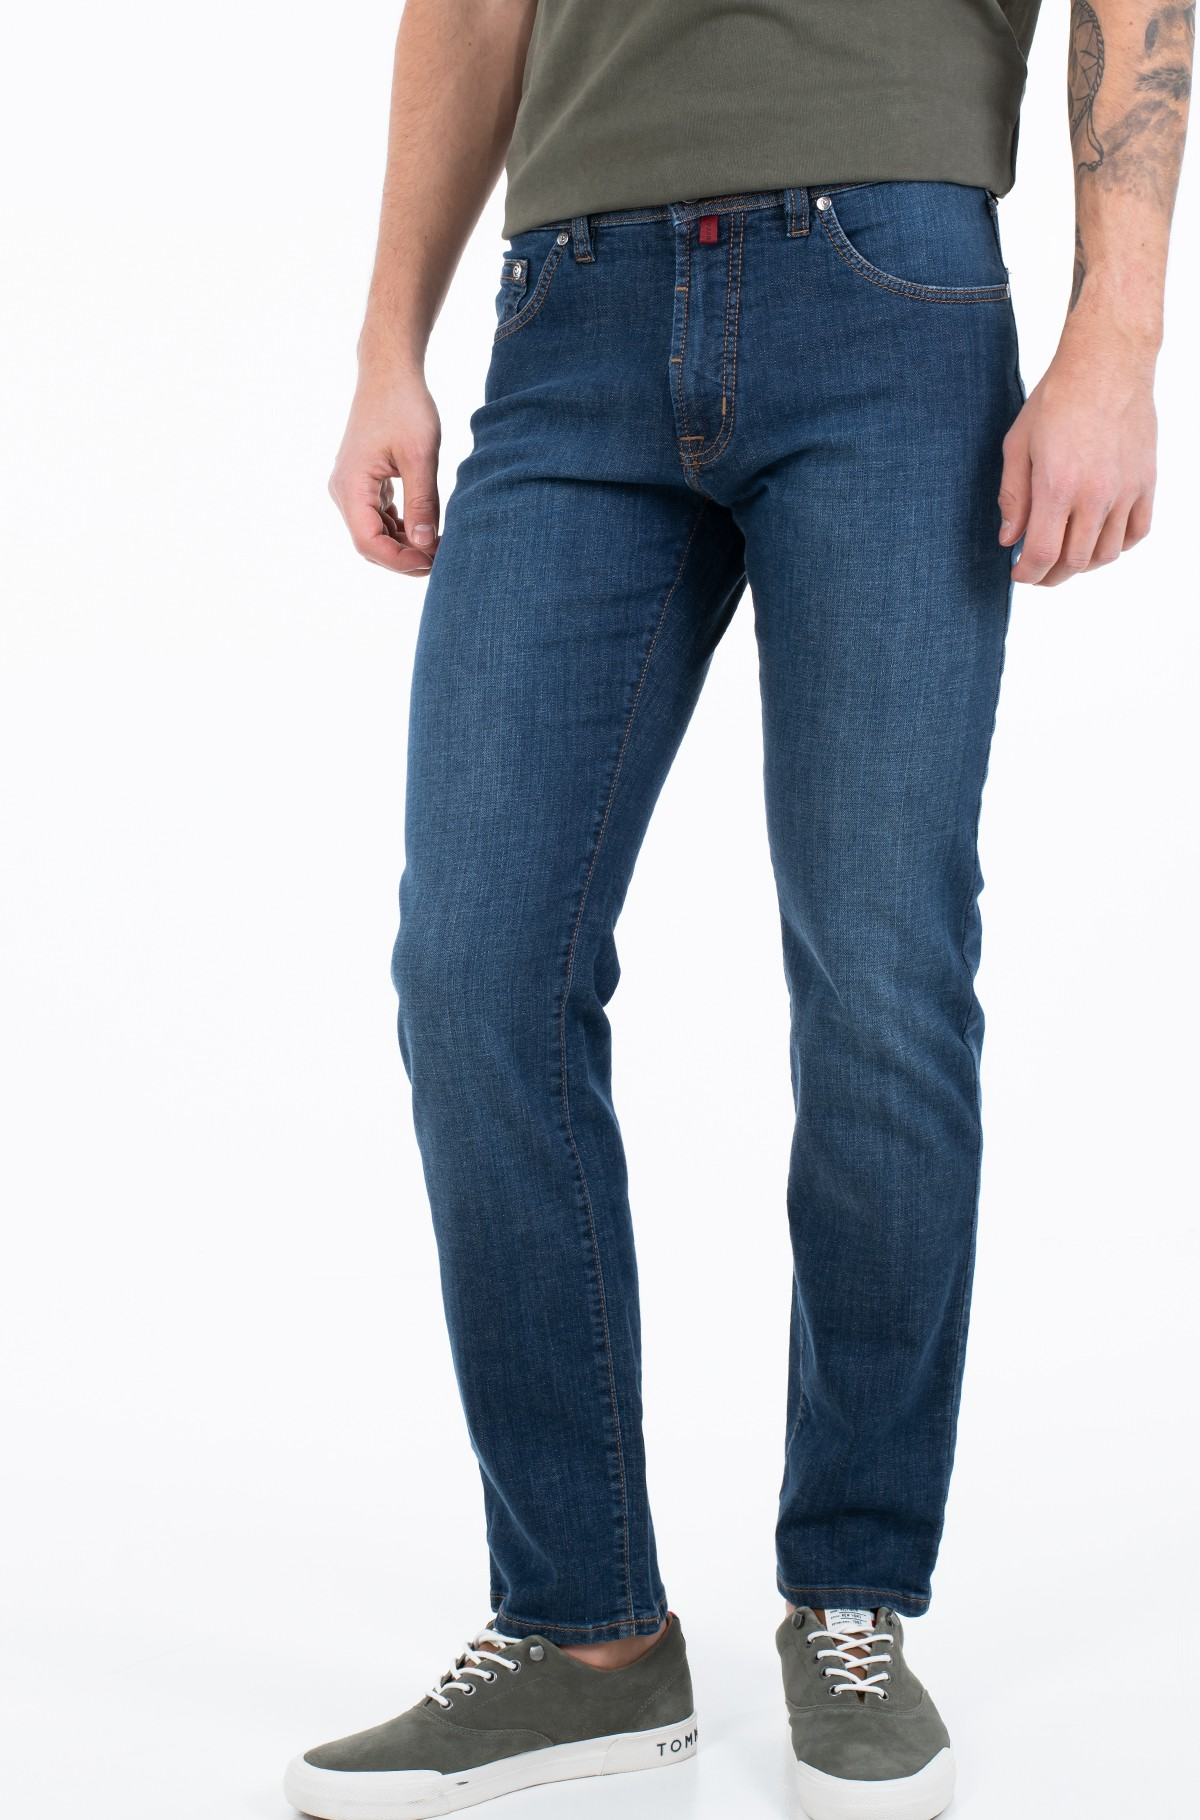 Jeans Deauville 3196-full-1